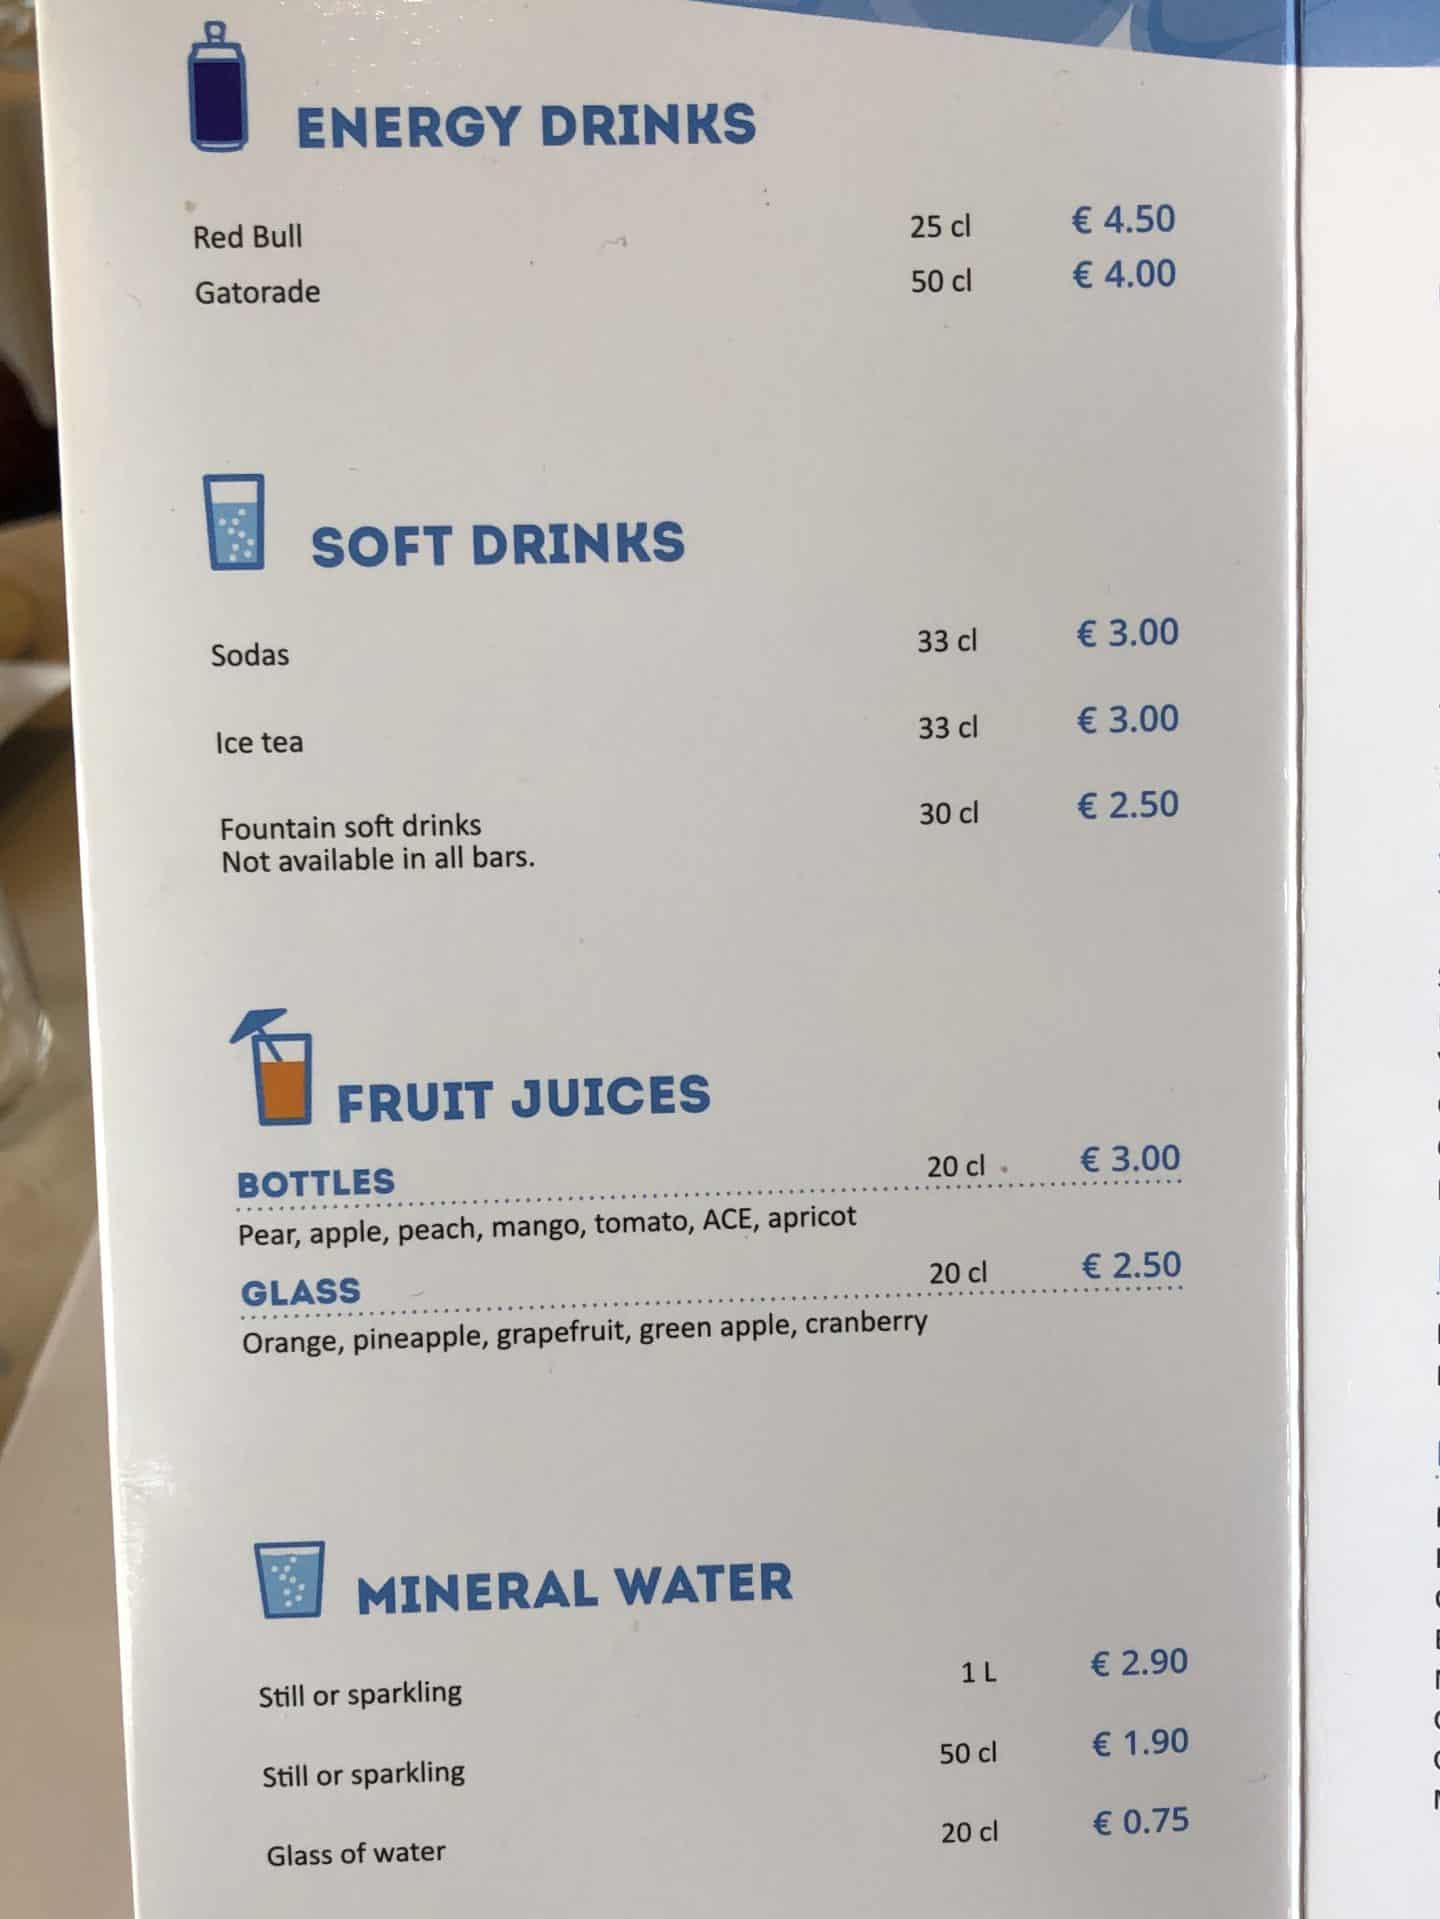 MSC Drink menus 2019 Energy drinks